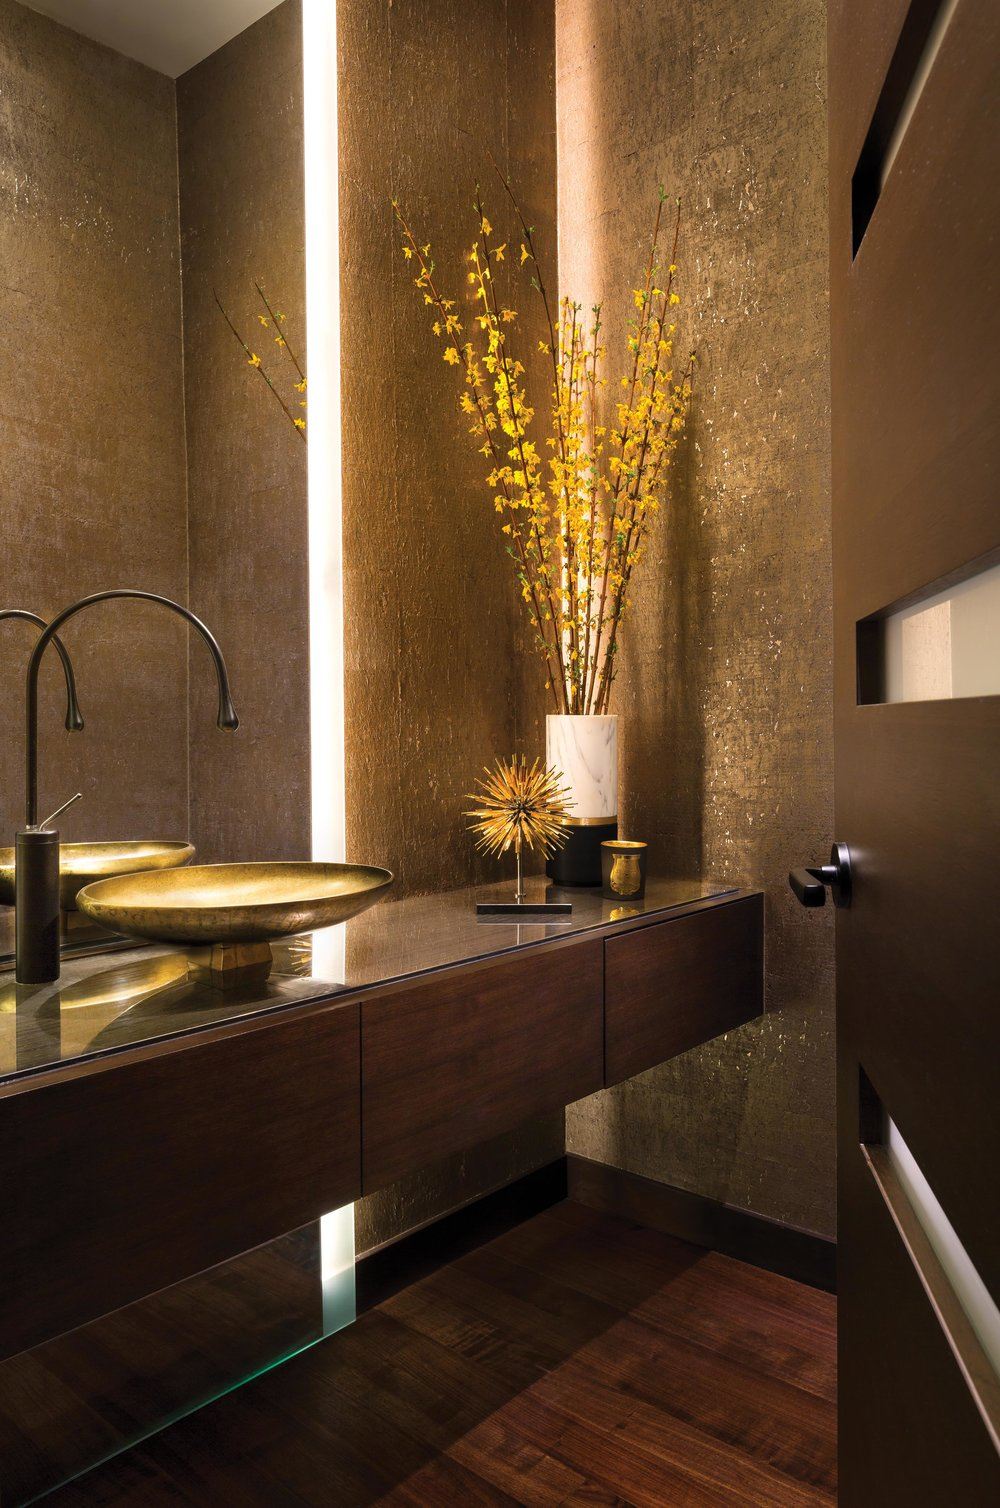 The warm ambience of the powder room is created with Smoke Screen marble by Aeon Stone & Tile, which sets off the bronze-finished sink and Gessi Goccia faucets.